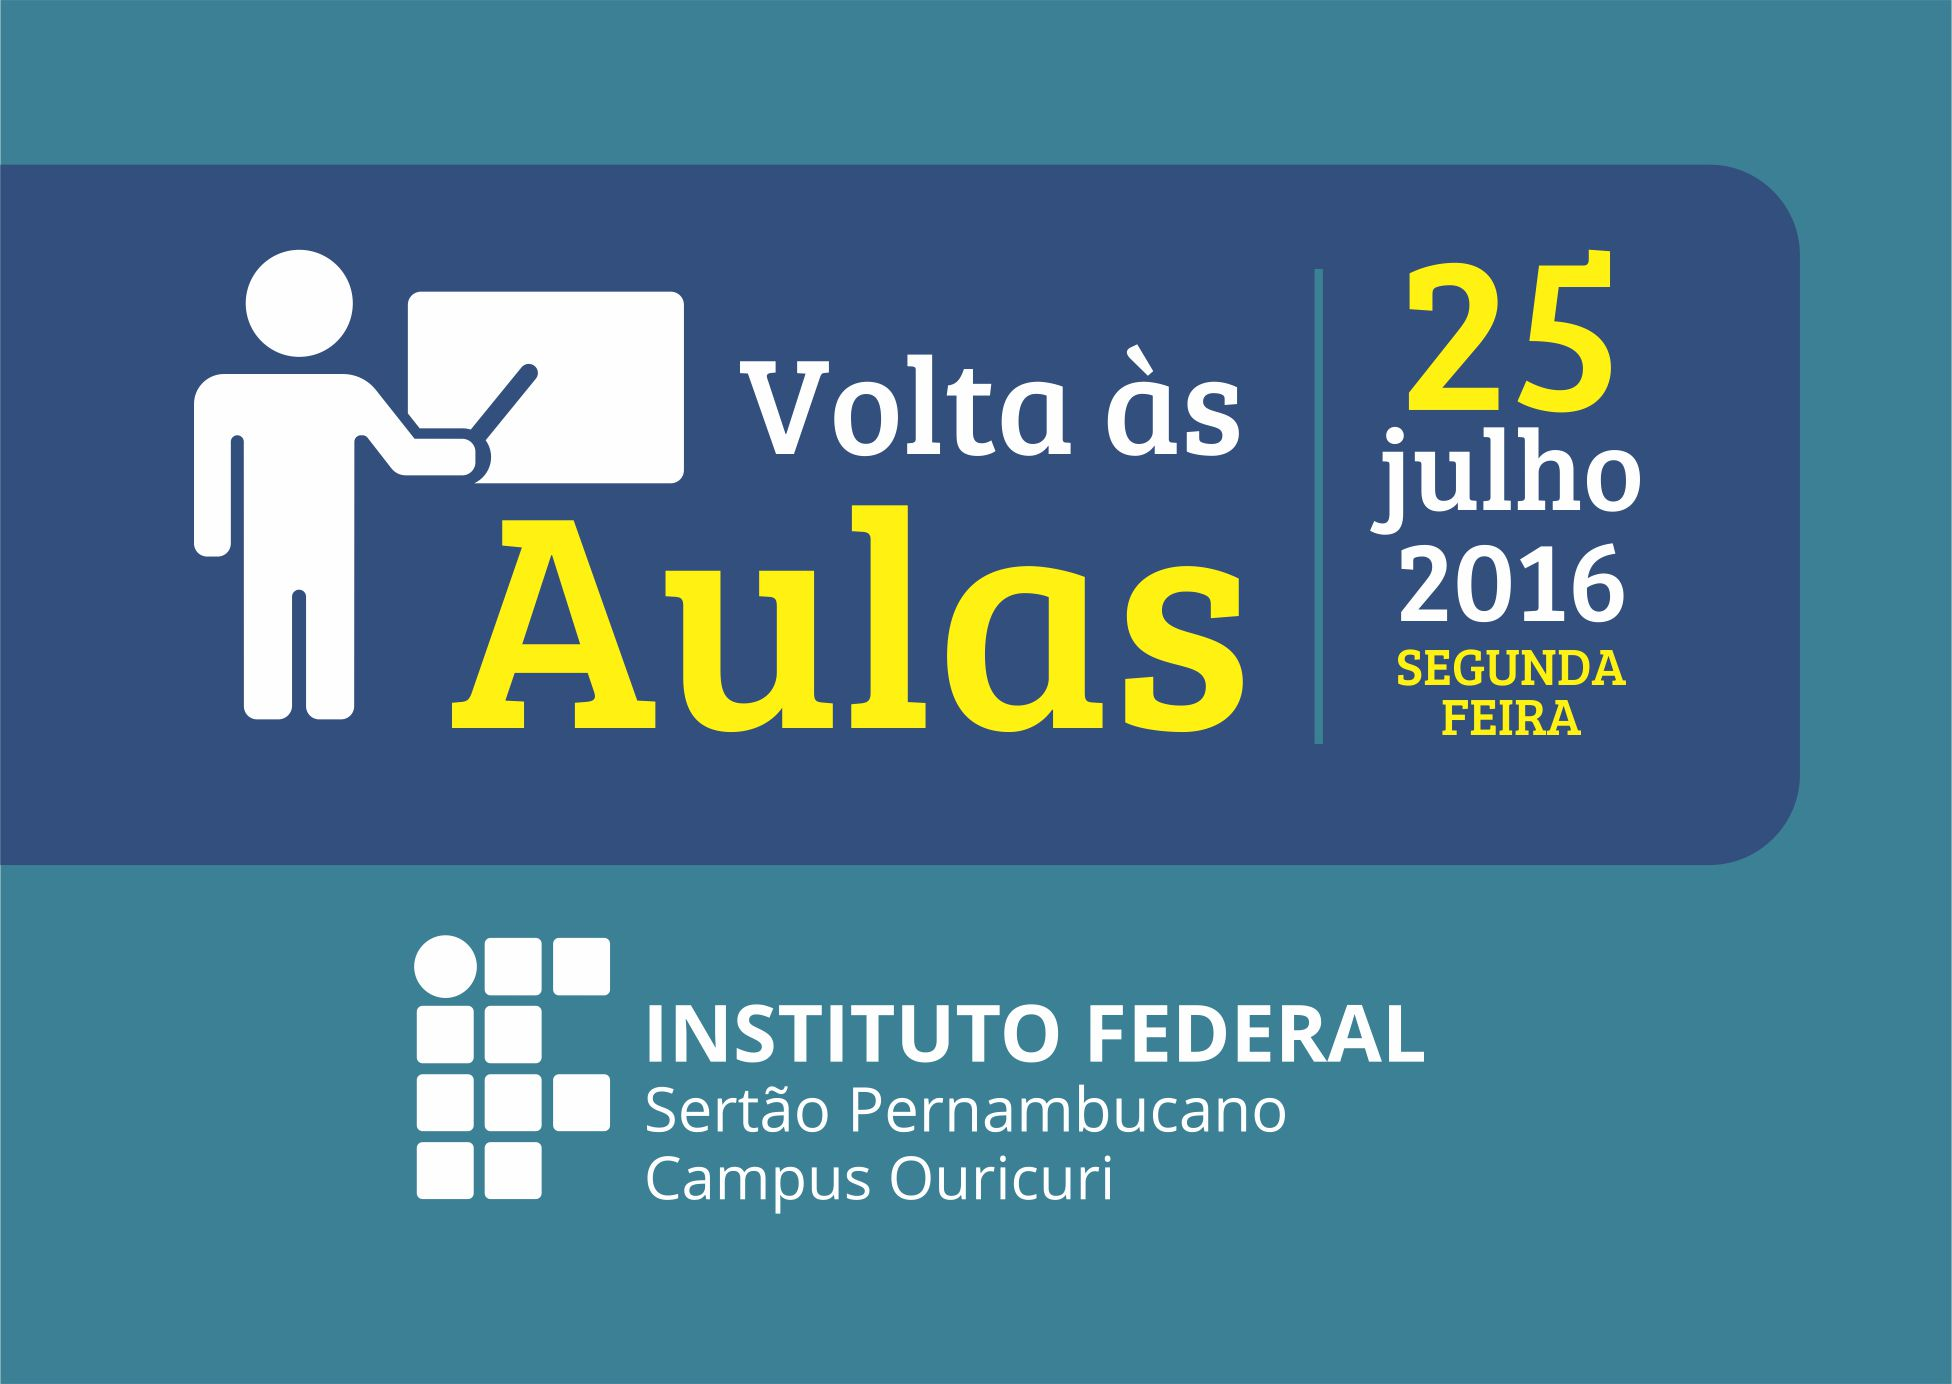 Voltas as aulas ouricuri - 2